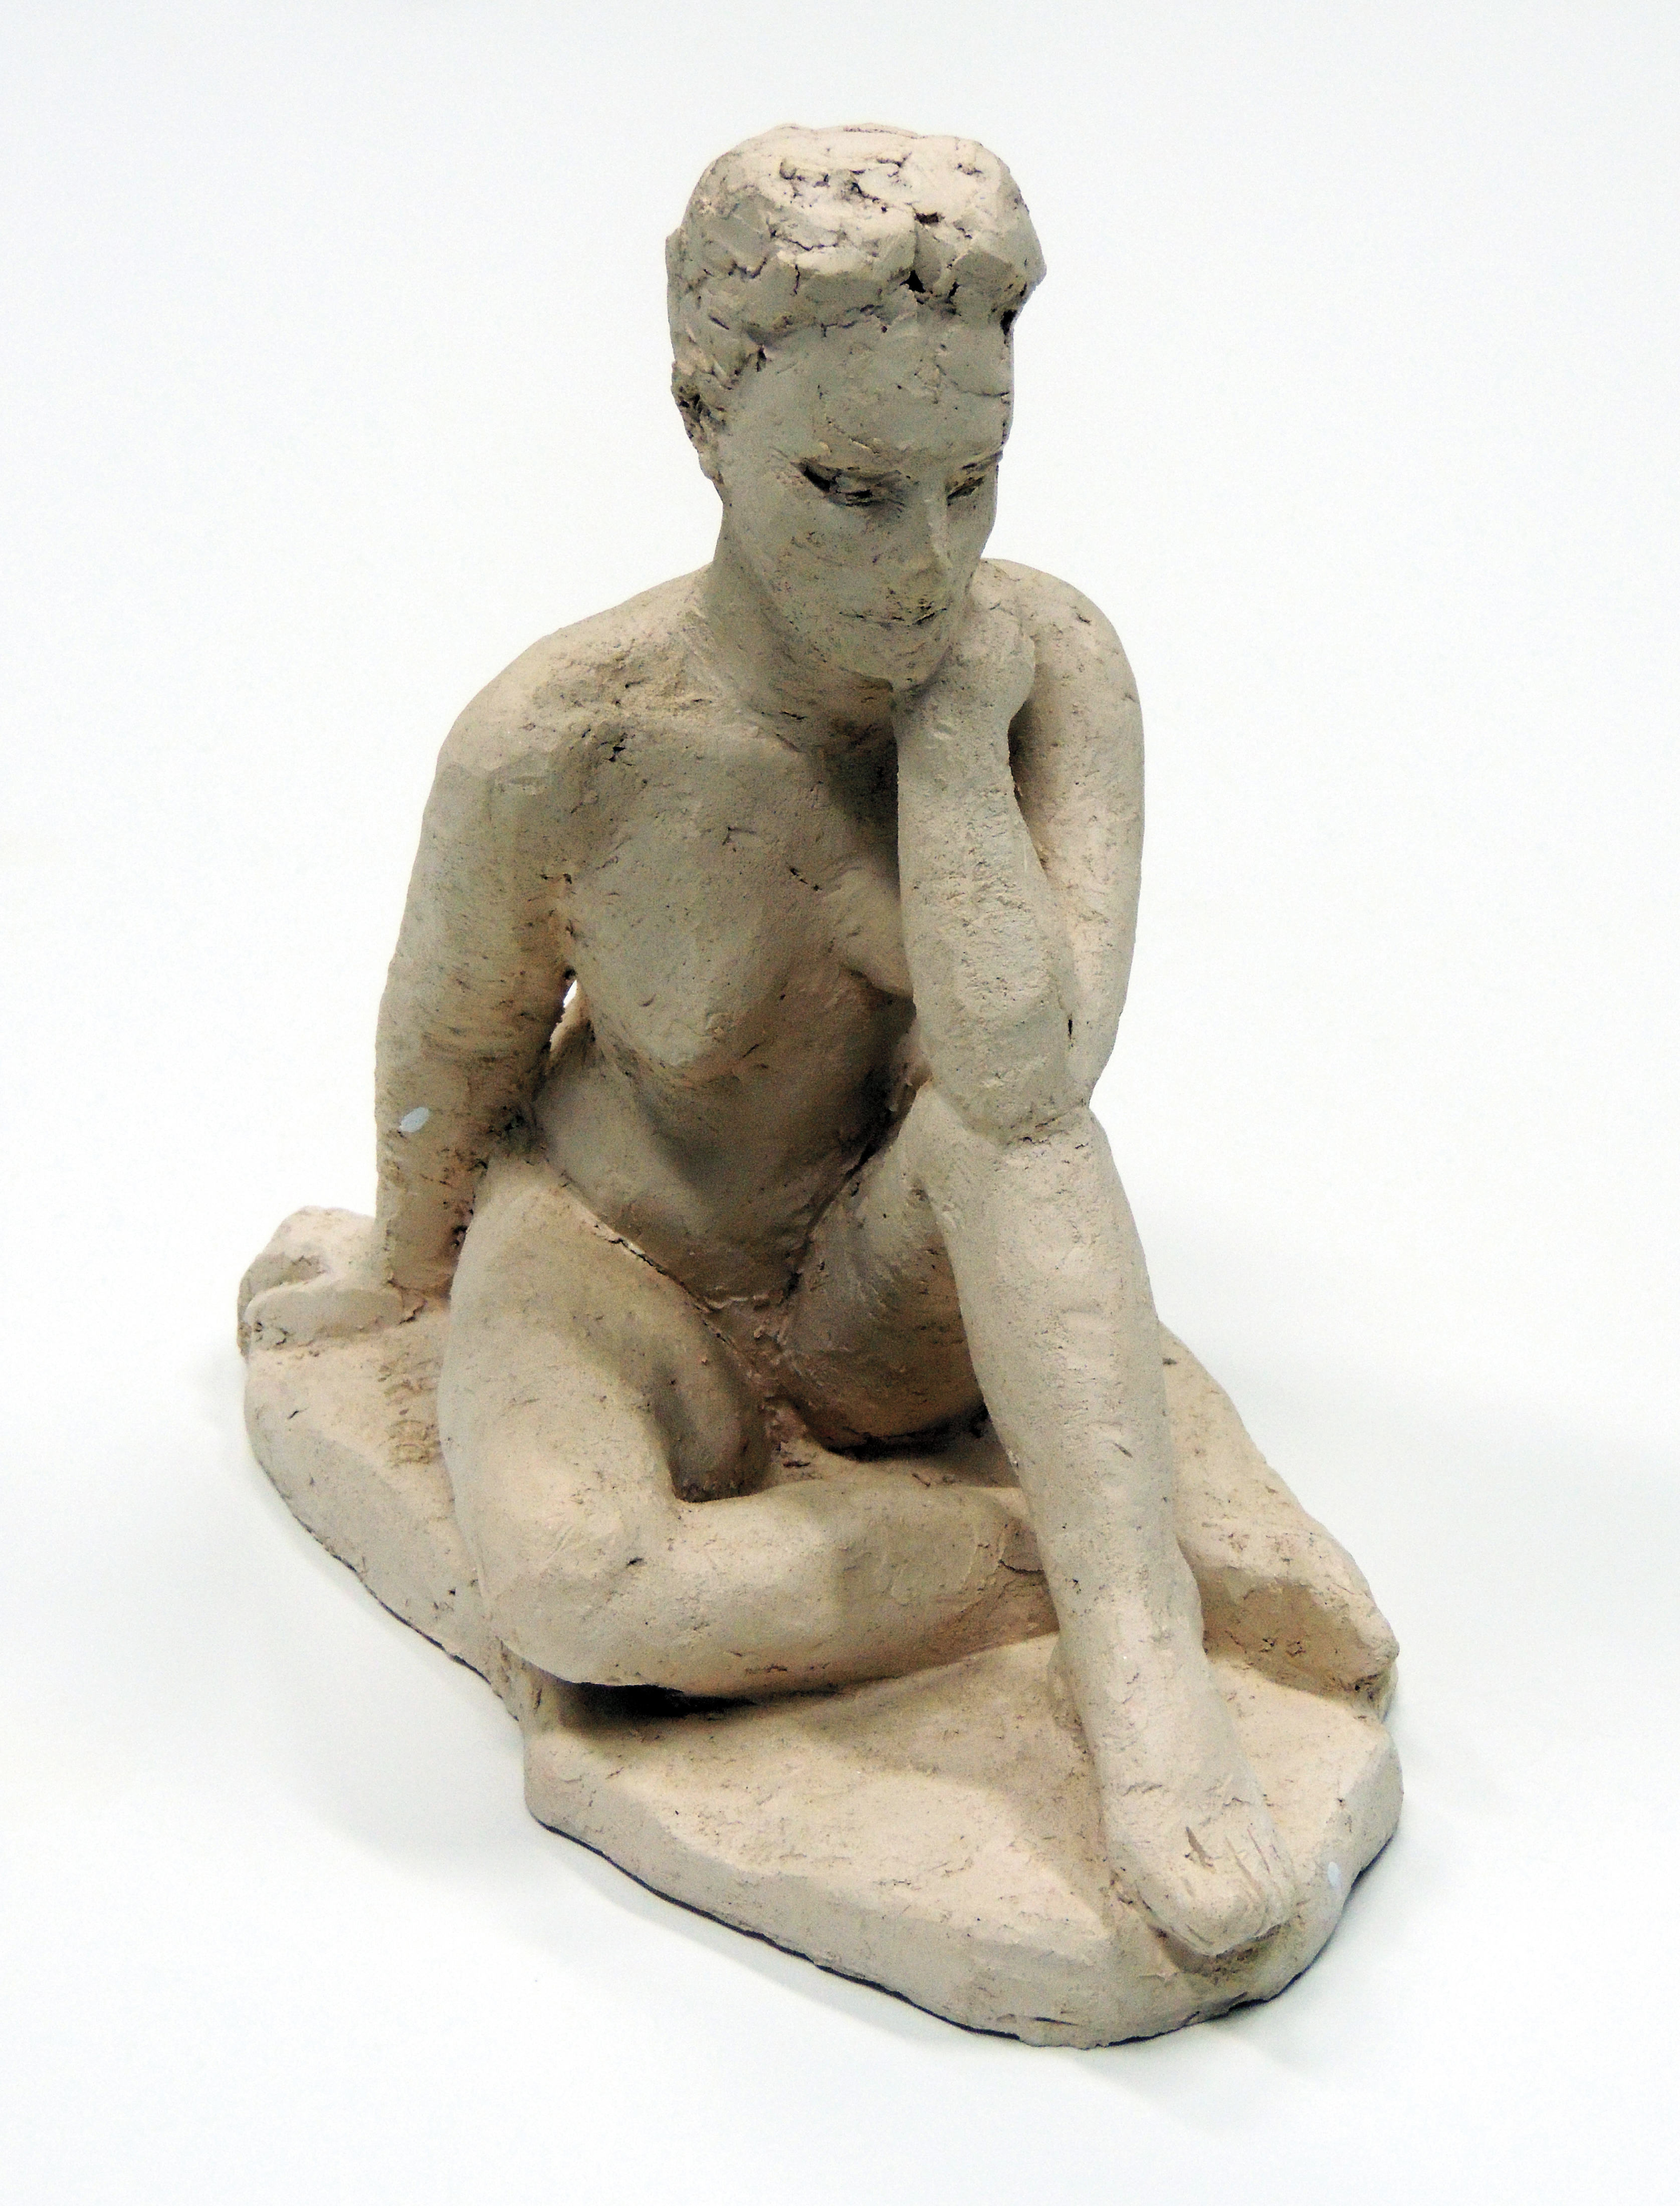 Jane Hollenbeck | UNTITLED | clay | 9 x 5 x 8"